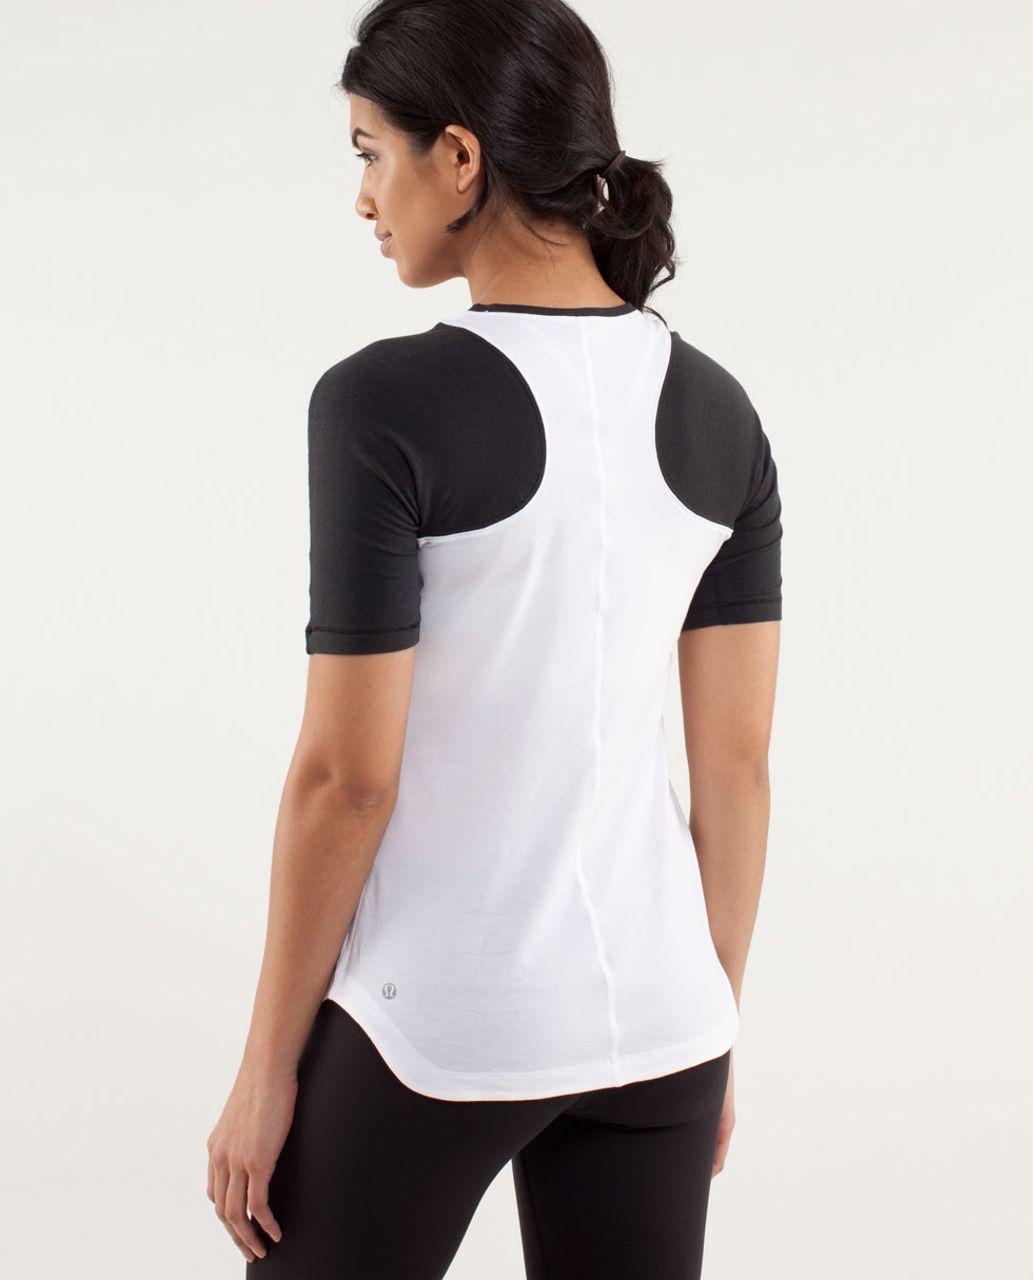 Lululemon Clari-Tee Short Sleeve - White /  Black